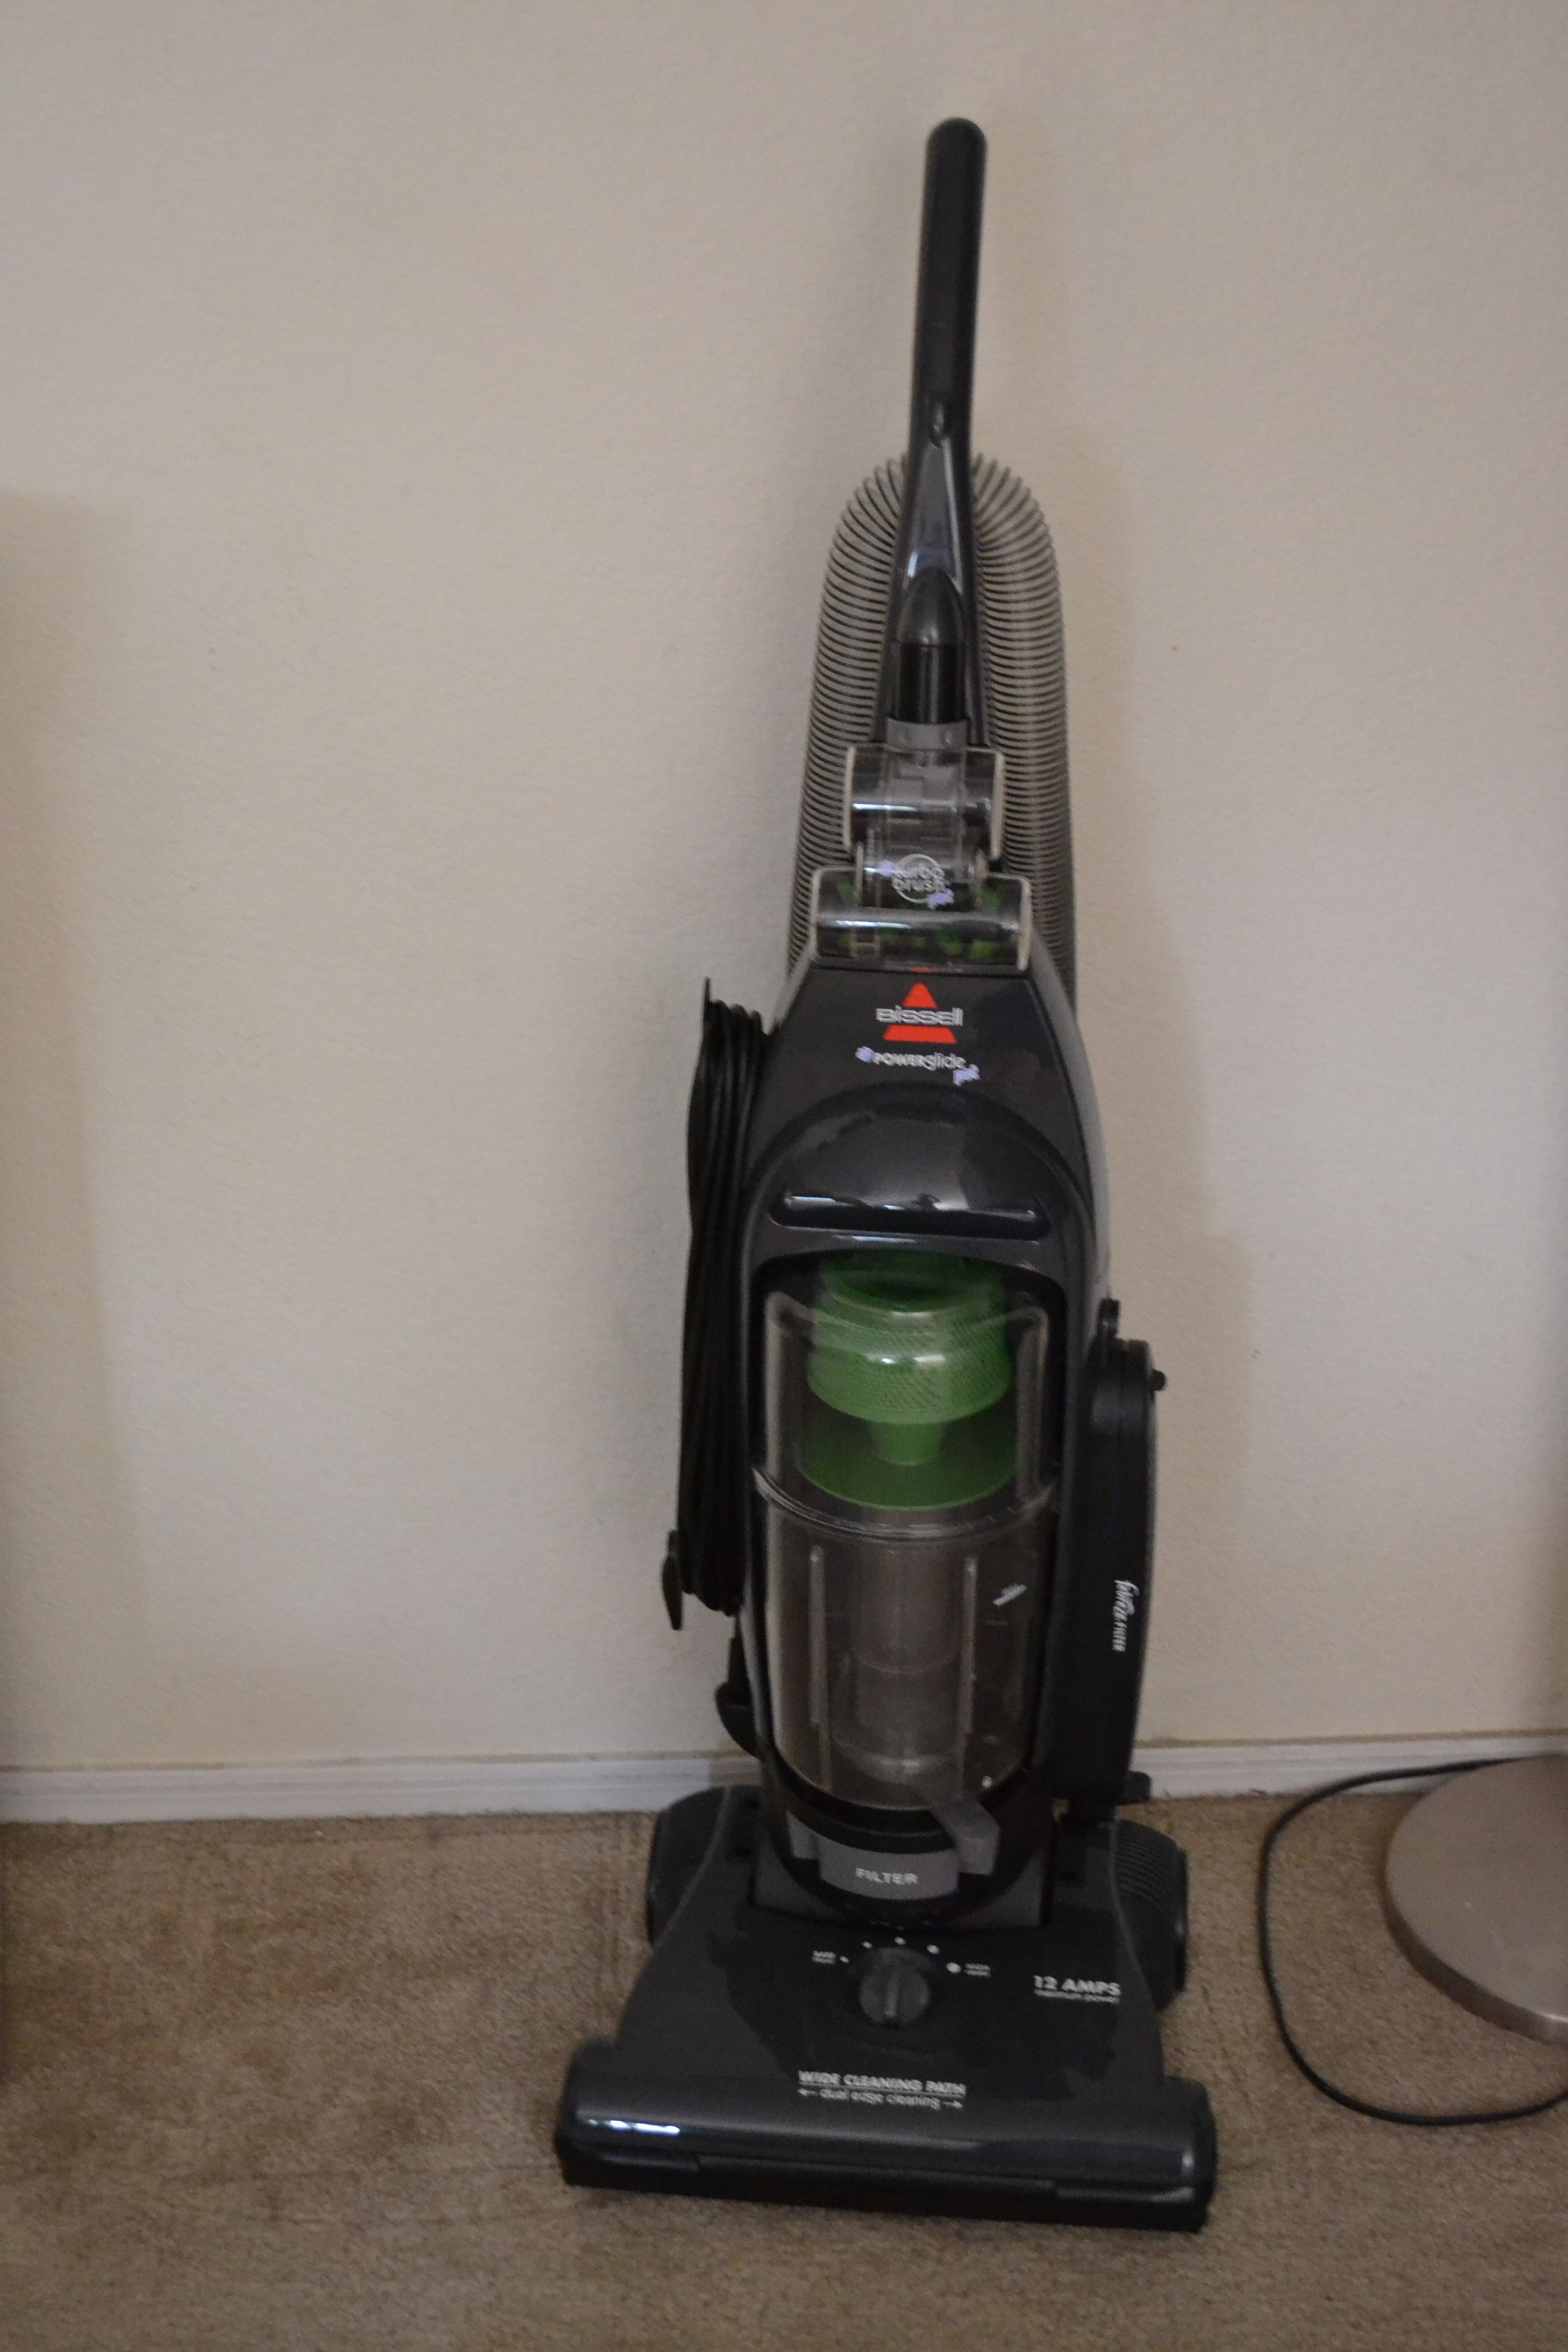 Naturally all this remodeling and we broke the vacuum had